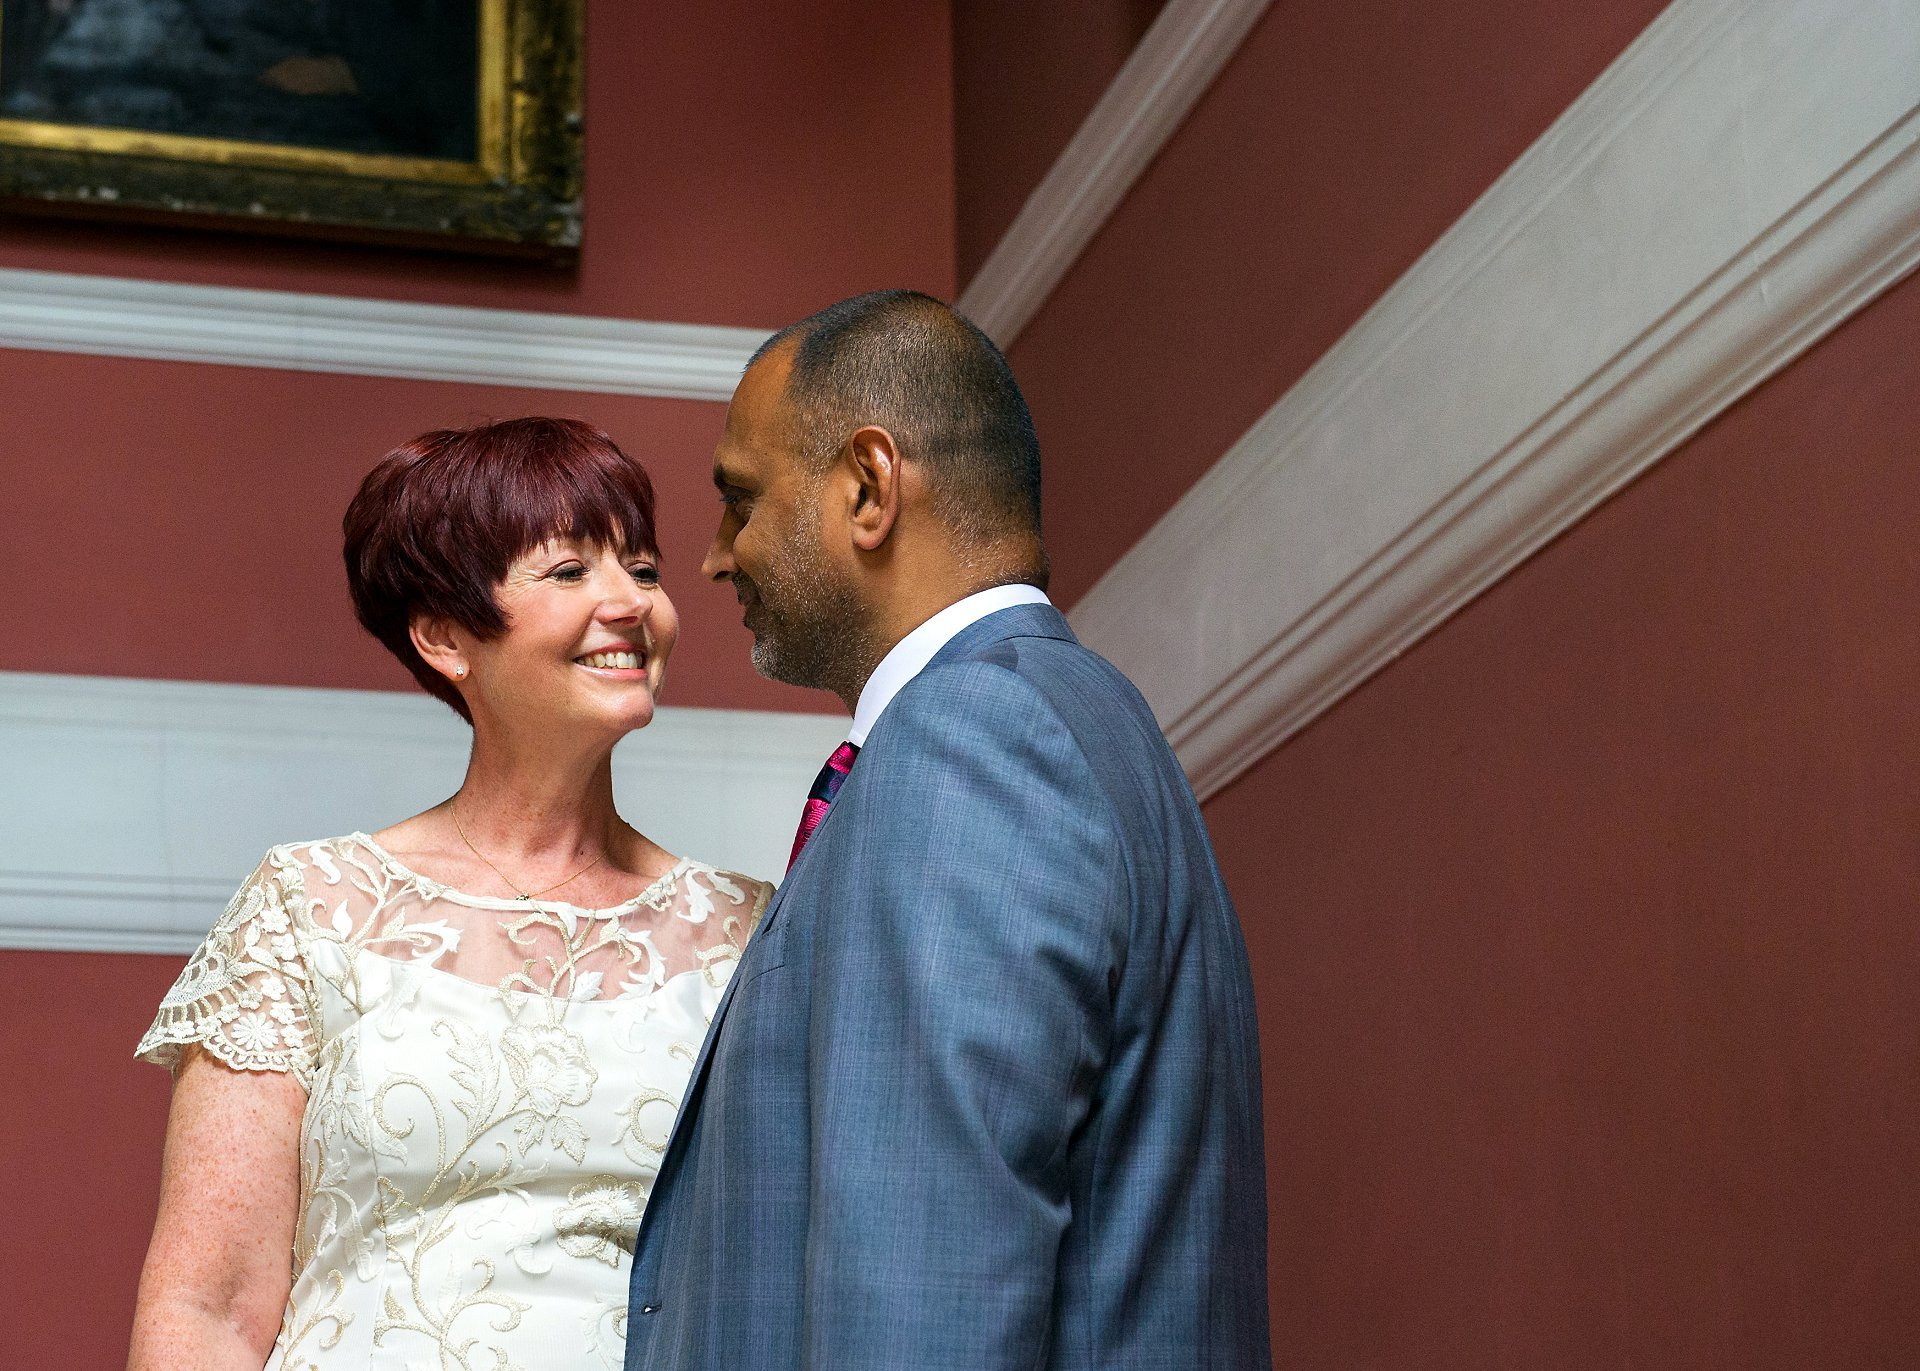 Chelsea Register Office wedding photogrpaher Emma Duggan Photography specialises in registry office weddings and Kensington & Chelsea Register Office otherwise known as Chelsea Old Town Hall is a favourite